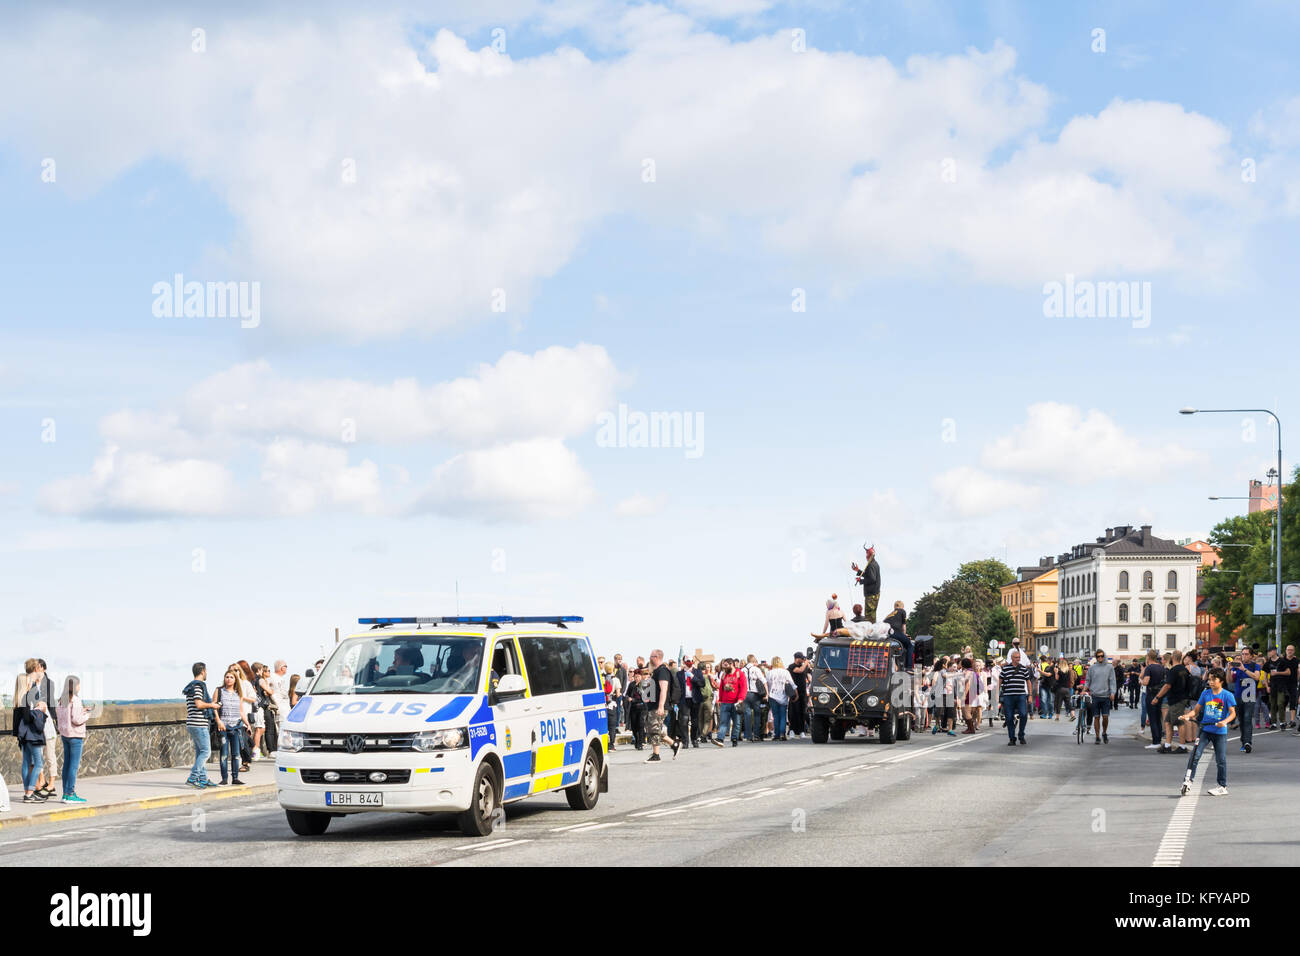 STOCKHOLM, SWEDEN – AUGUST 20, 2016: People dressed up as zombies participate in annual Zombie Walk parade in Stockholm, - Stock Image